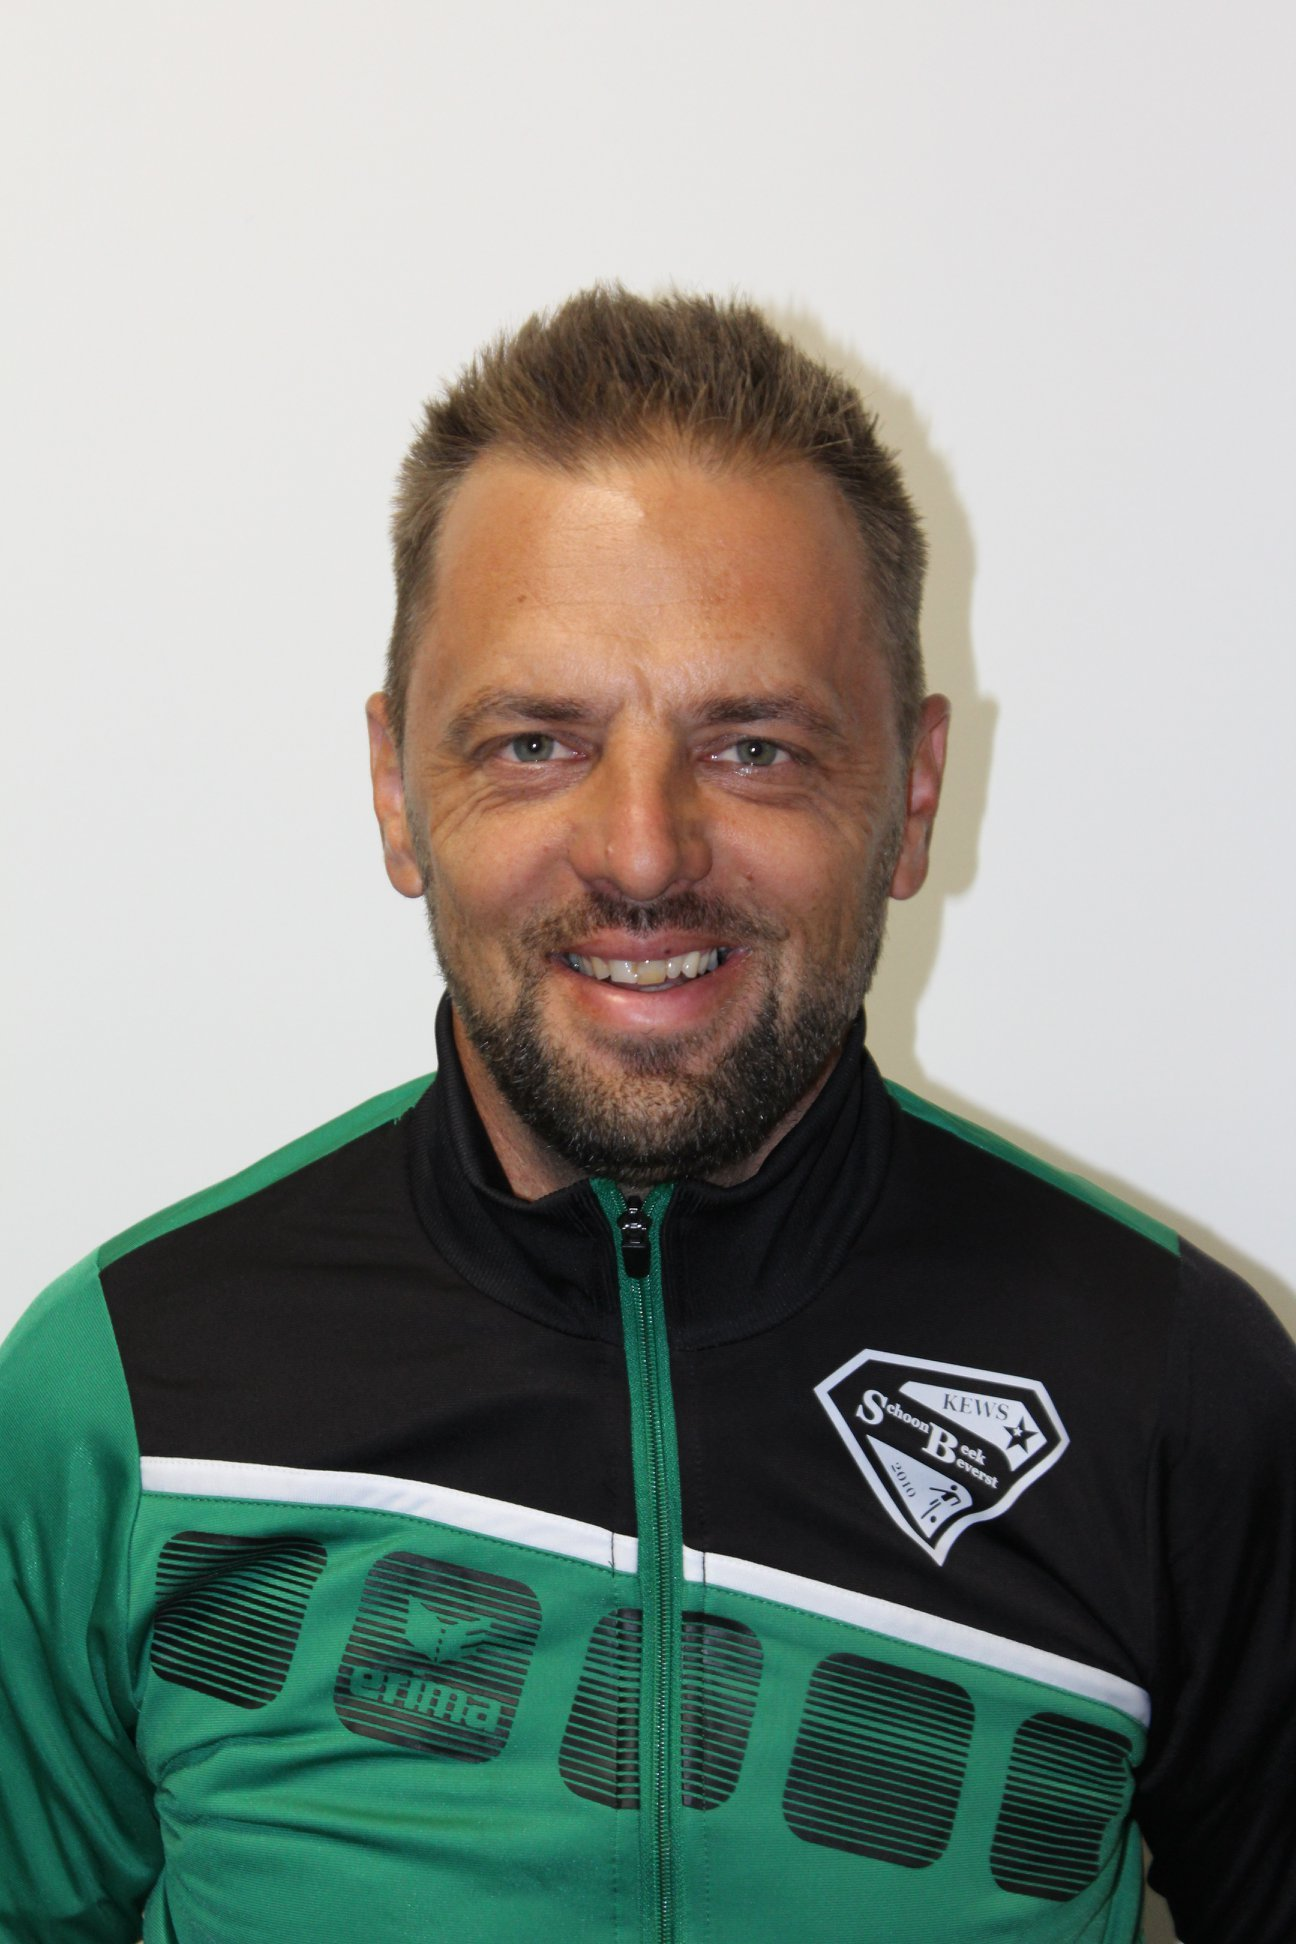 U7a Christophe Vanspauwen